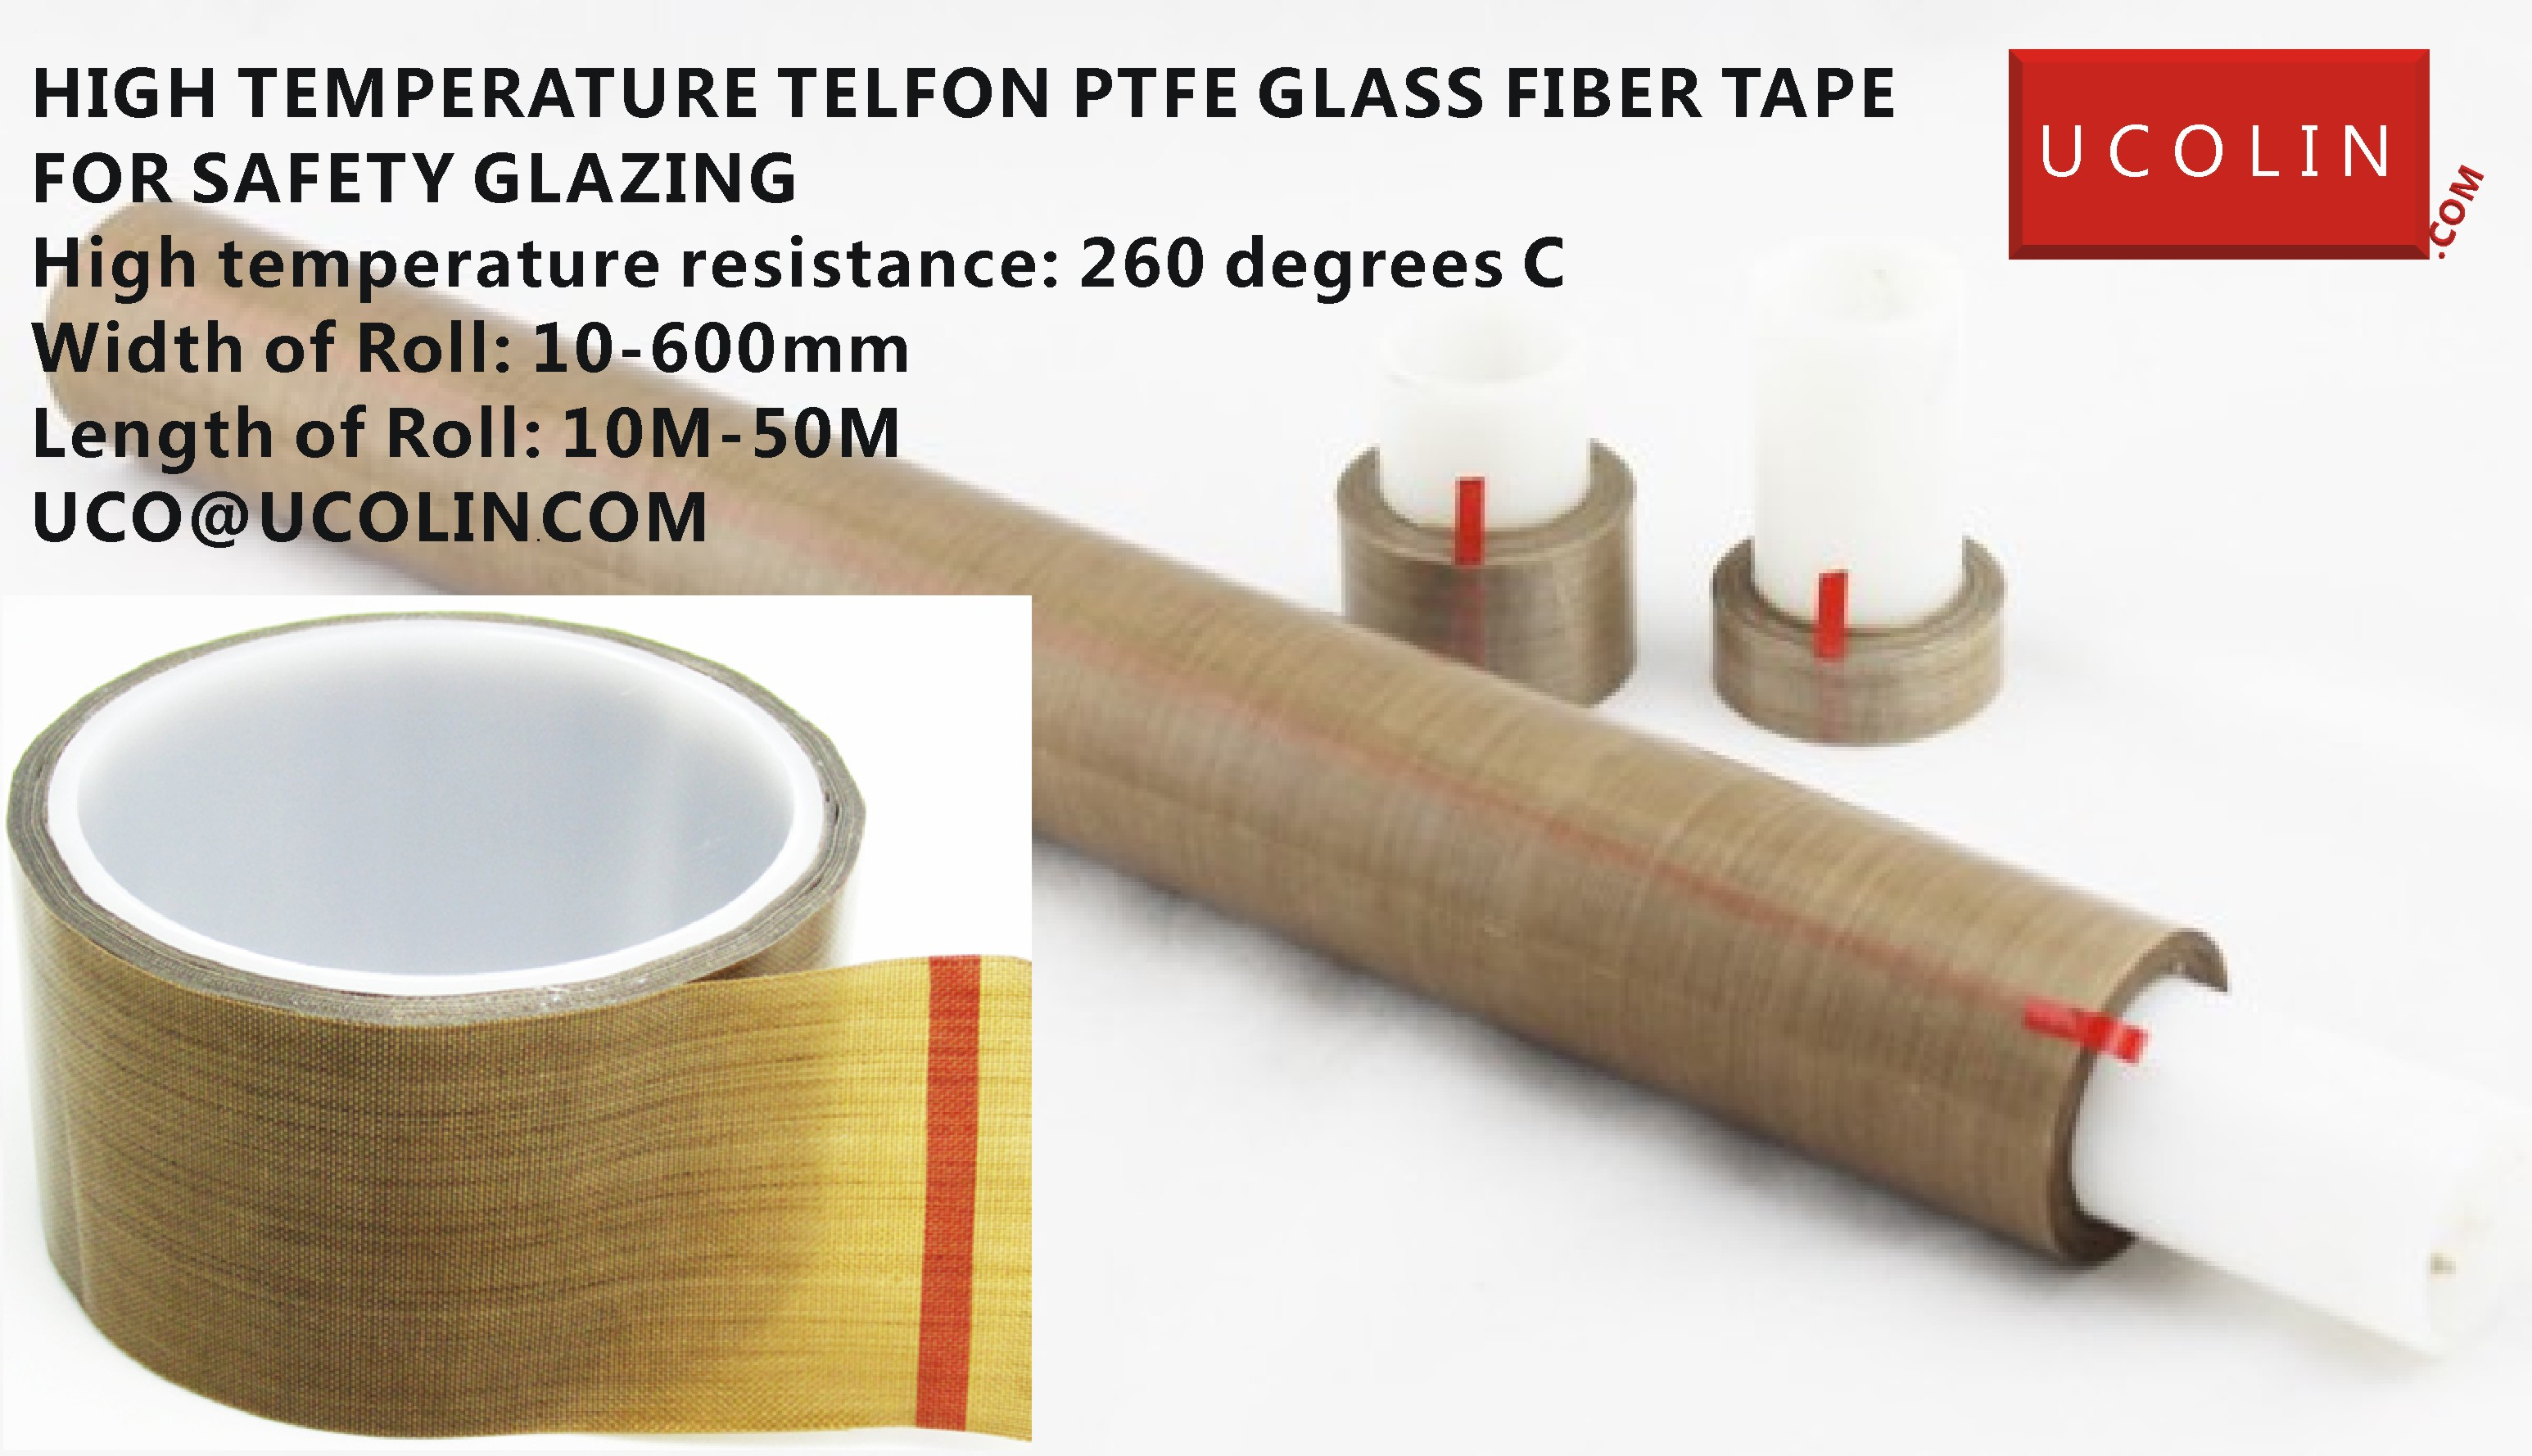 HIGH TEMPERATURE TELFON PTFE GLASS FIBER TAPE FOR SAFETY GLAZING